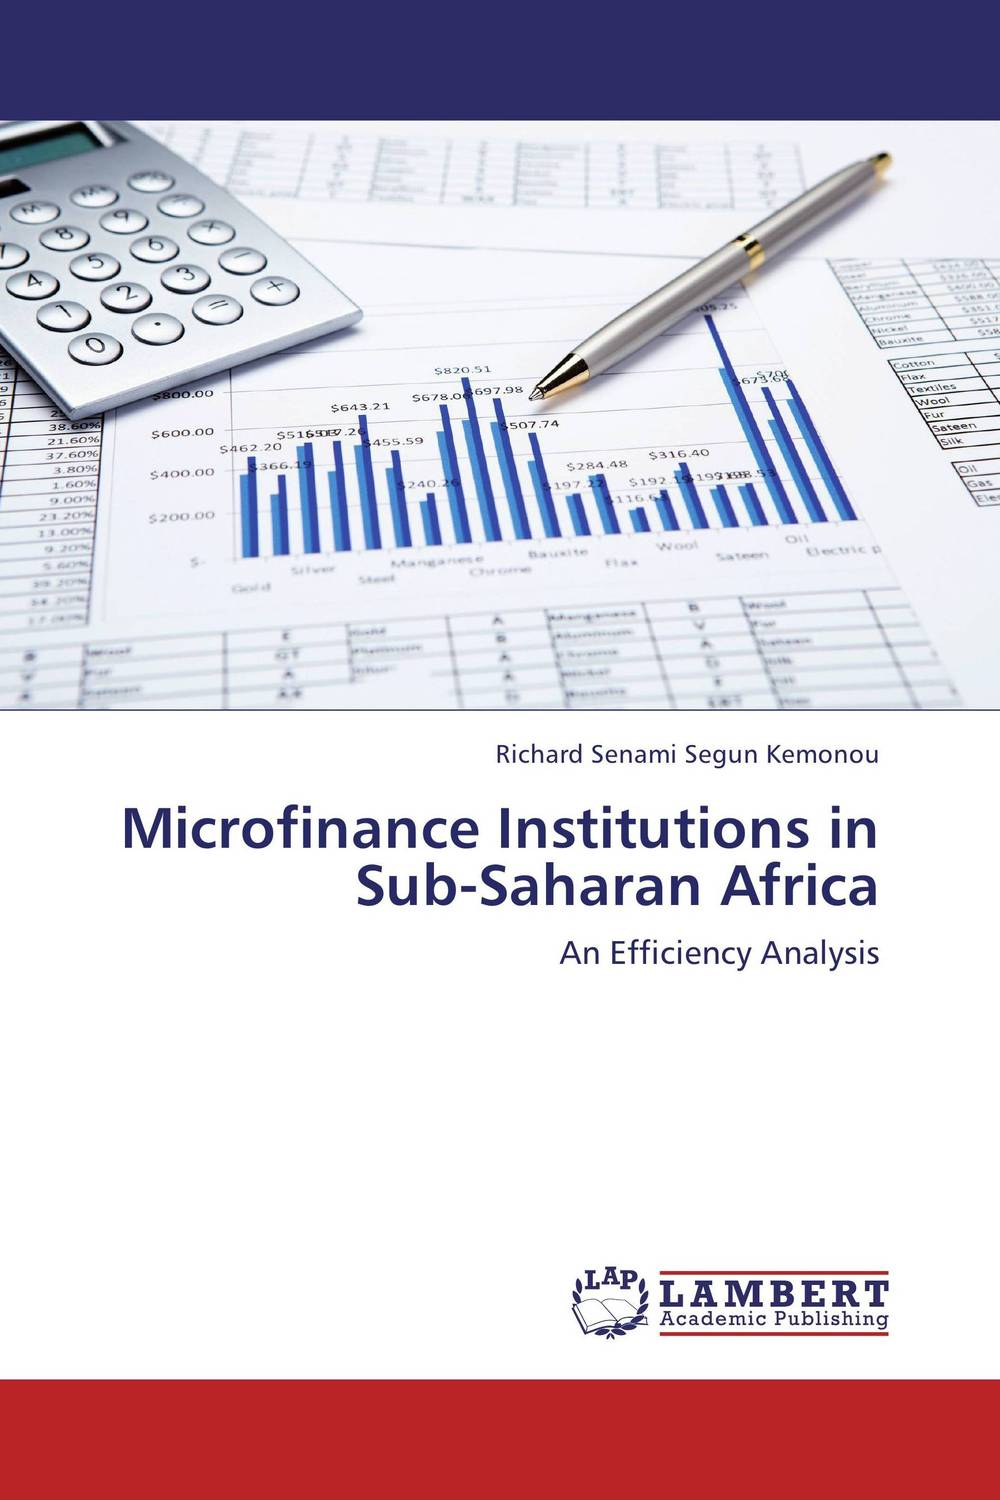 Microfinance Institutions in Sub-Saharan Africa chinedu chinedu the debt growth link in sub saharan africa